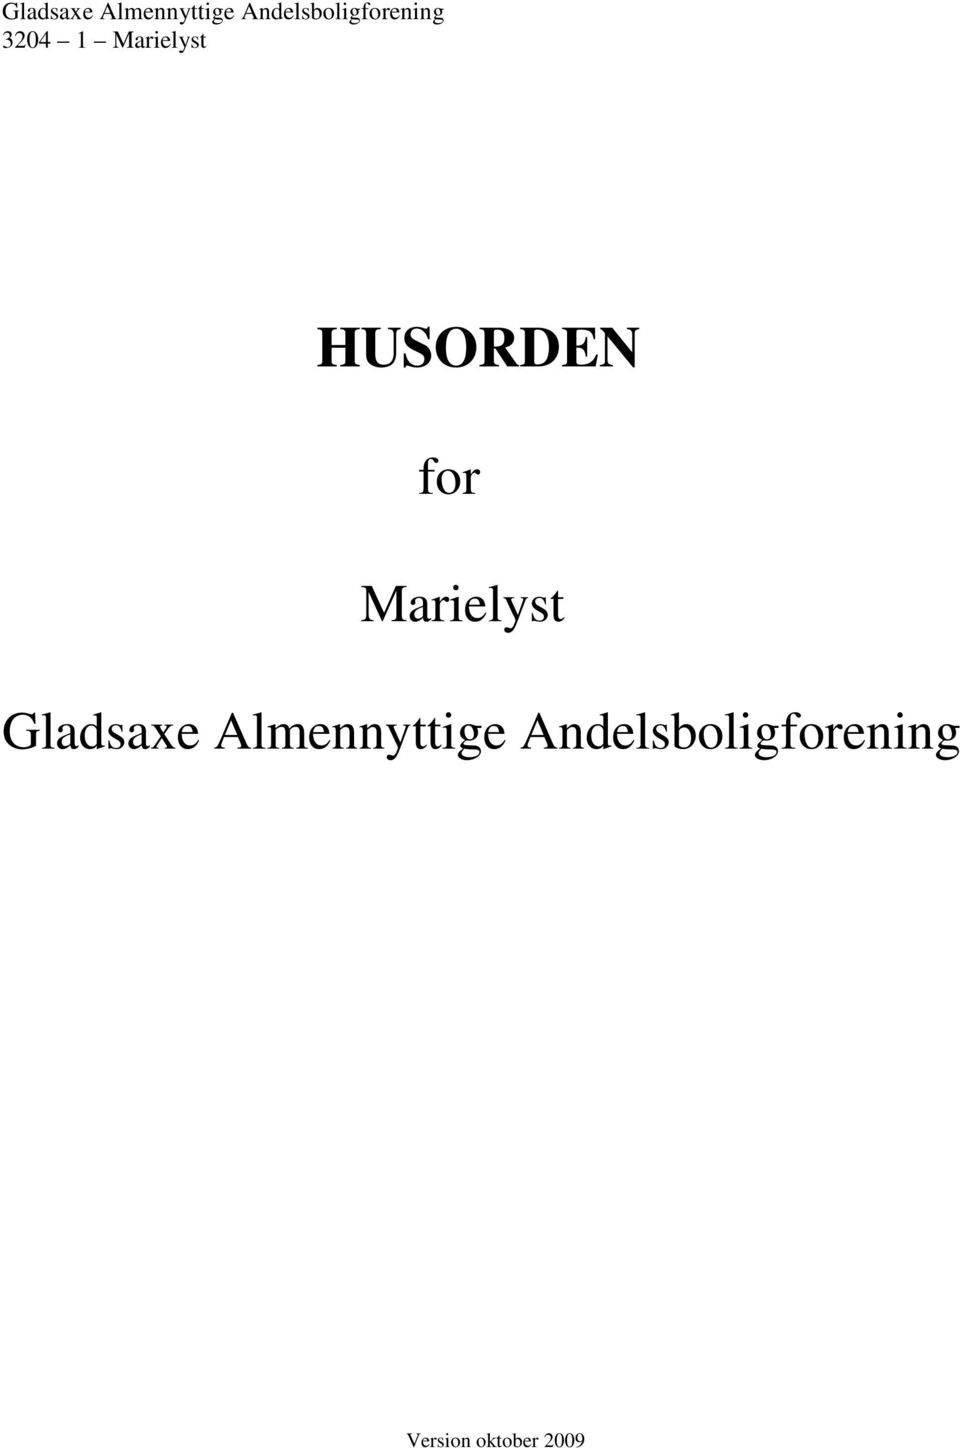 Marielyst HUSORDEN for